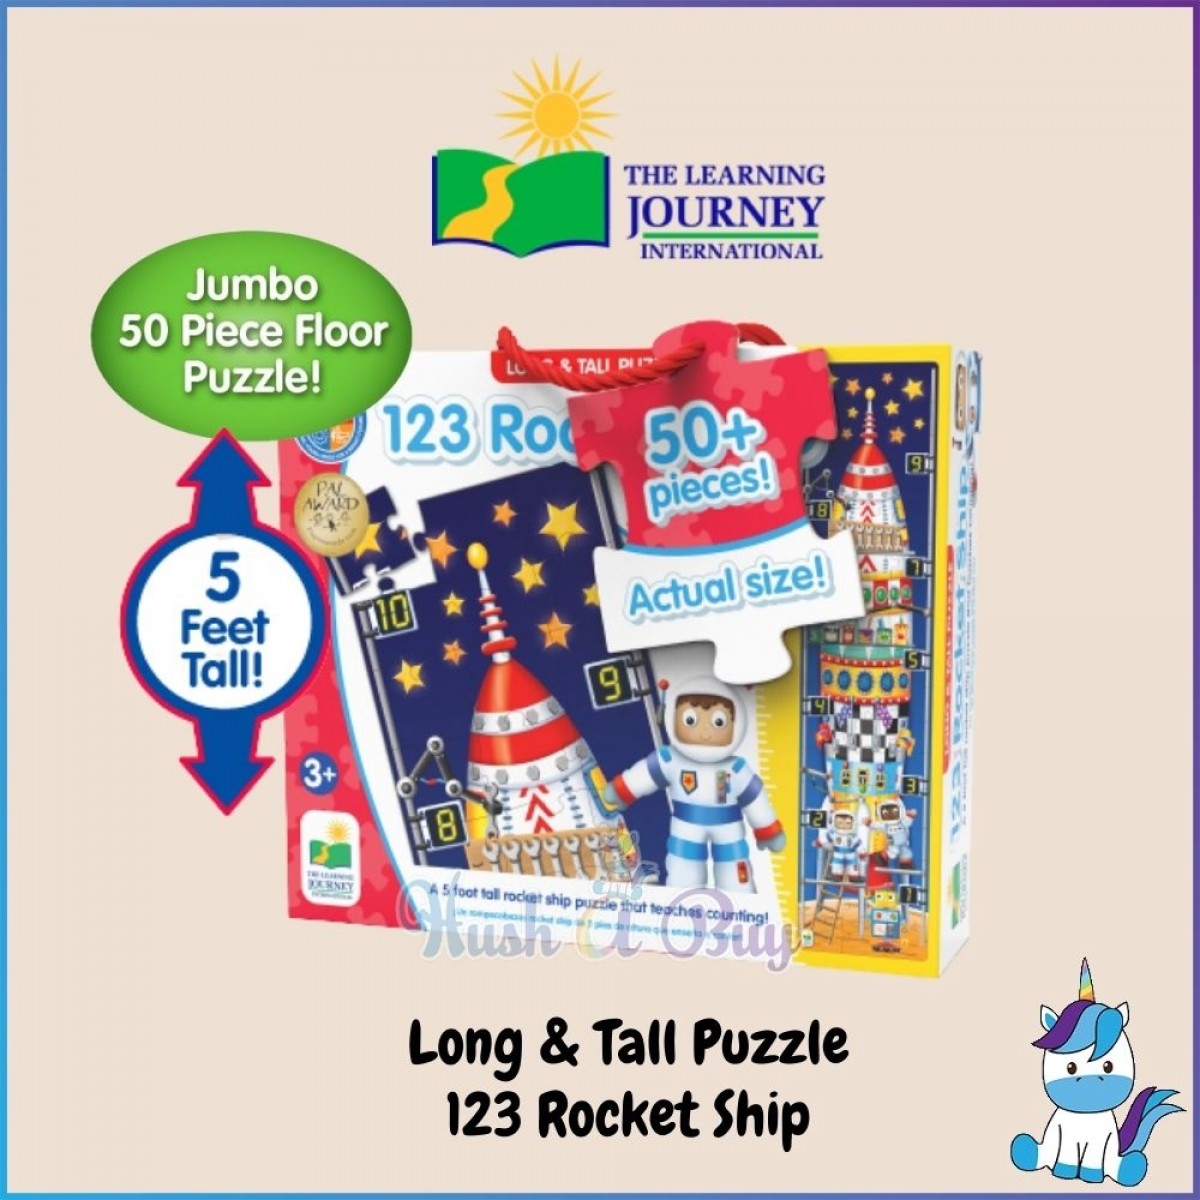 The Learning Journey International JUMBO FLOOR PUZZLE/PUZZLE DOUBLES/LONG & TALL PUZZLE